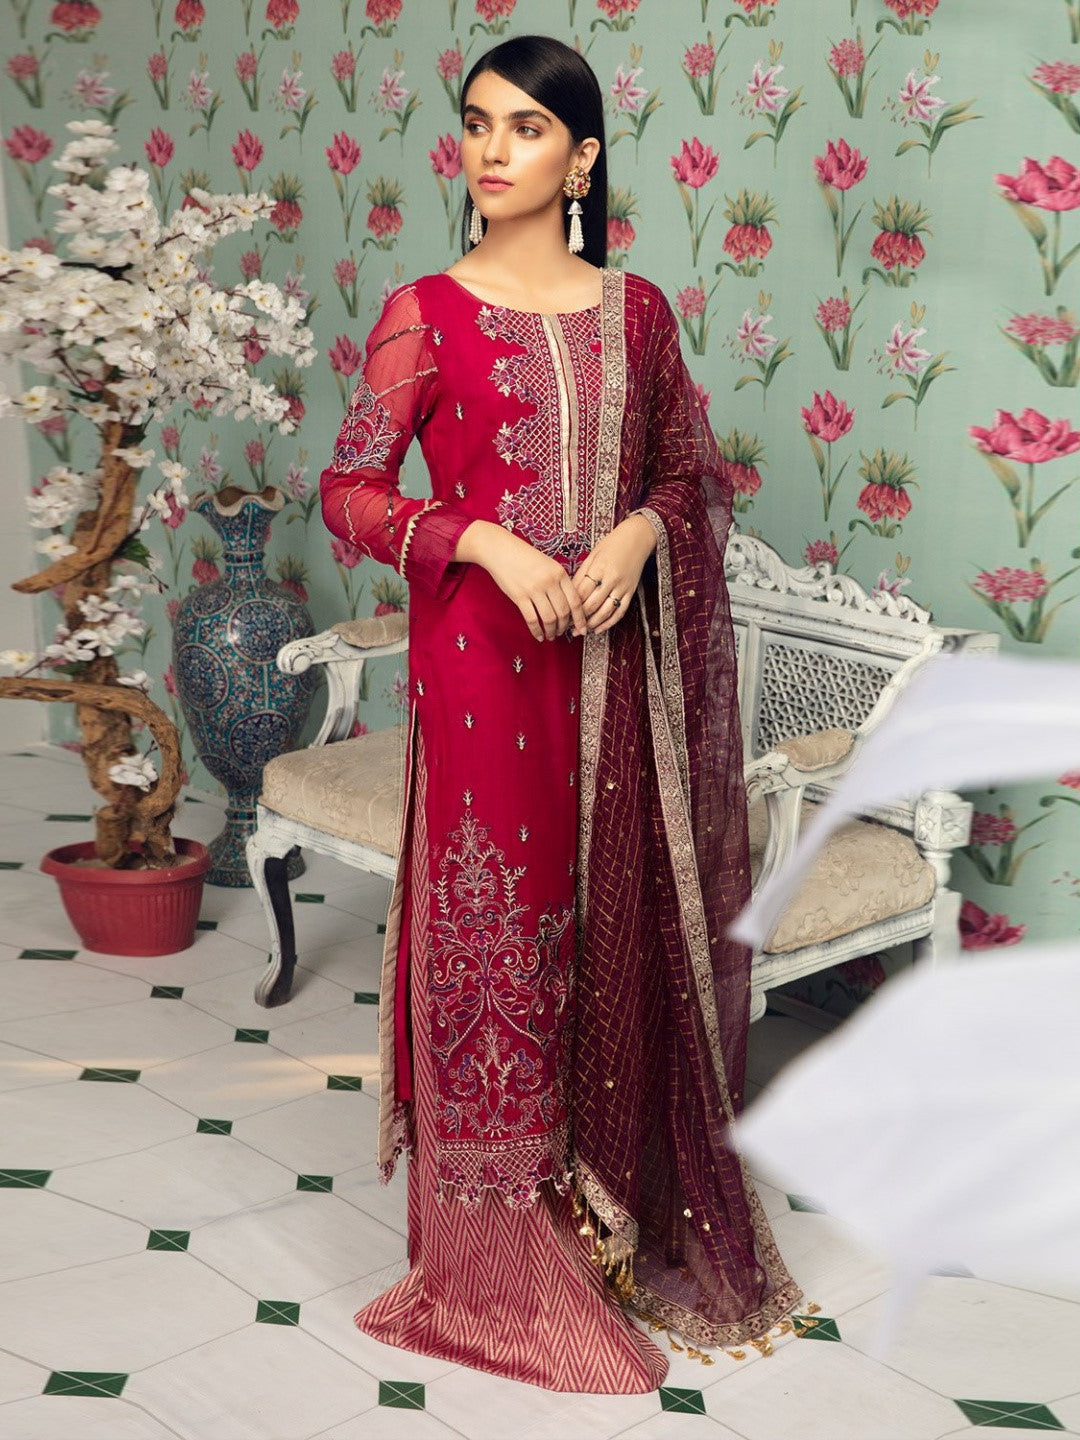 Premium Chiffon Pakistani Dress